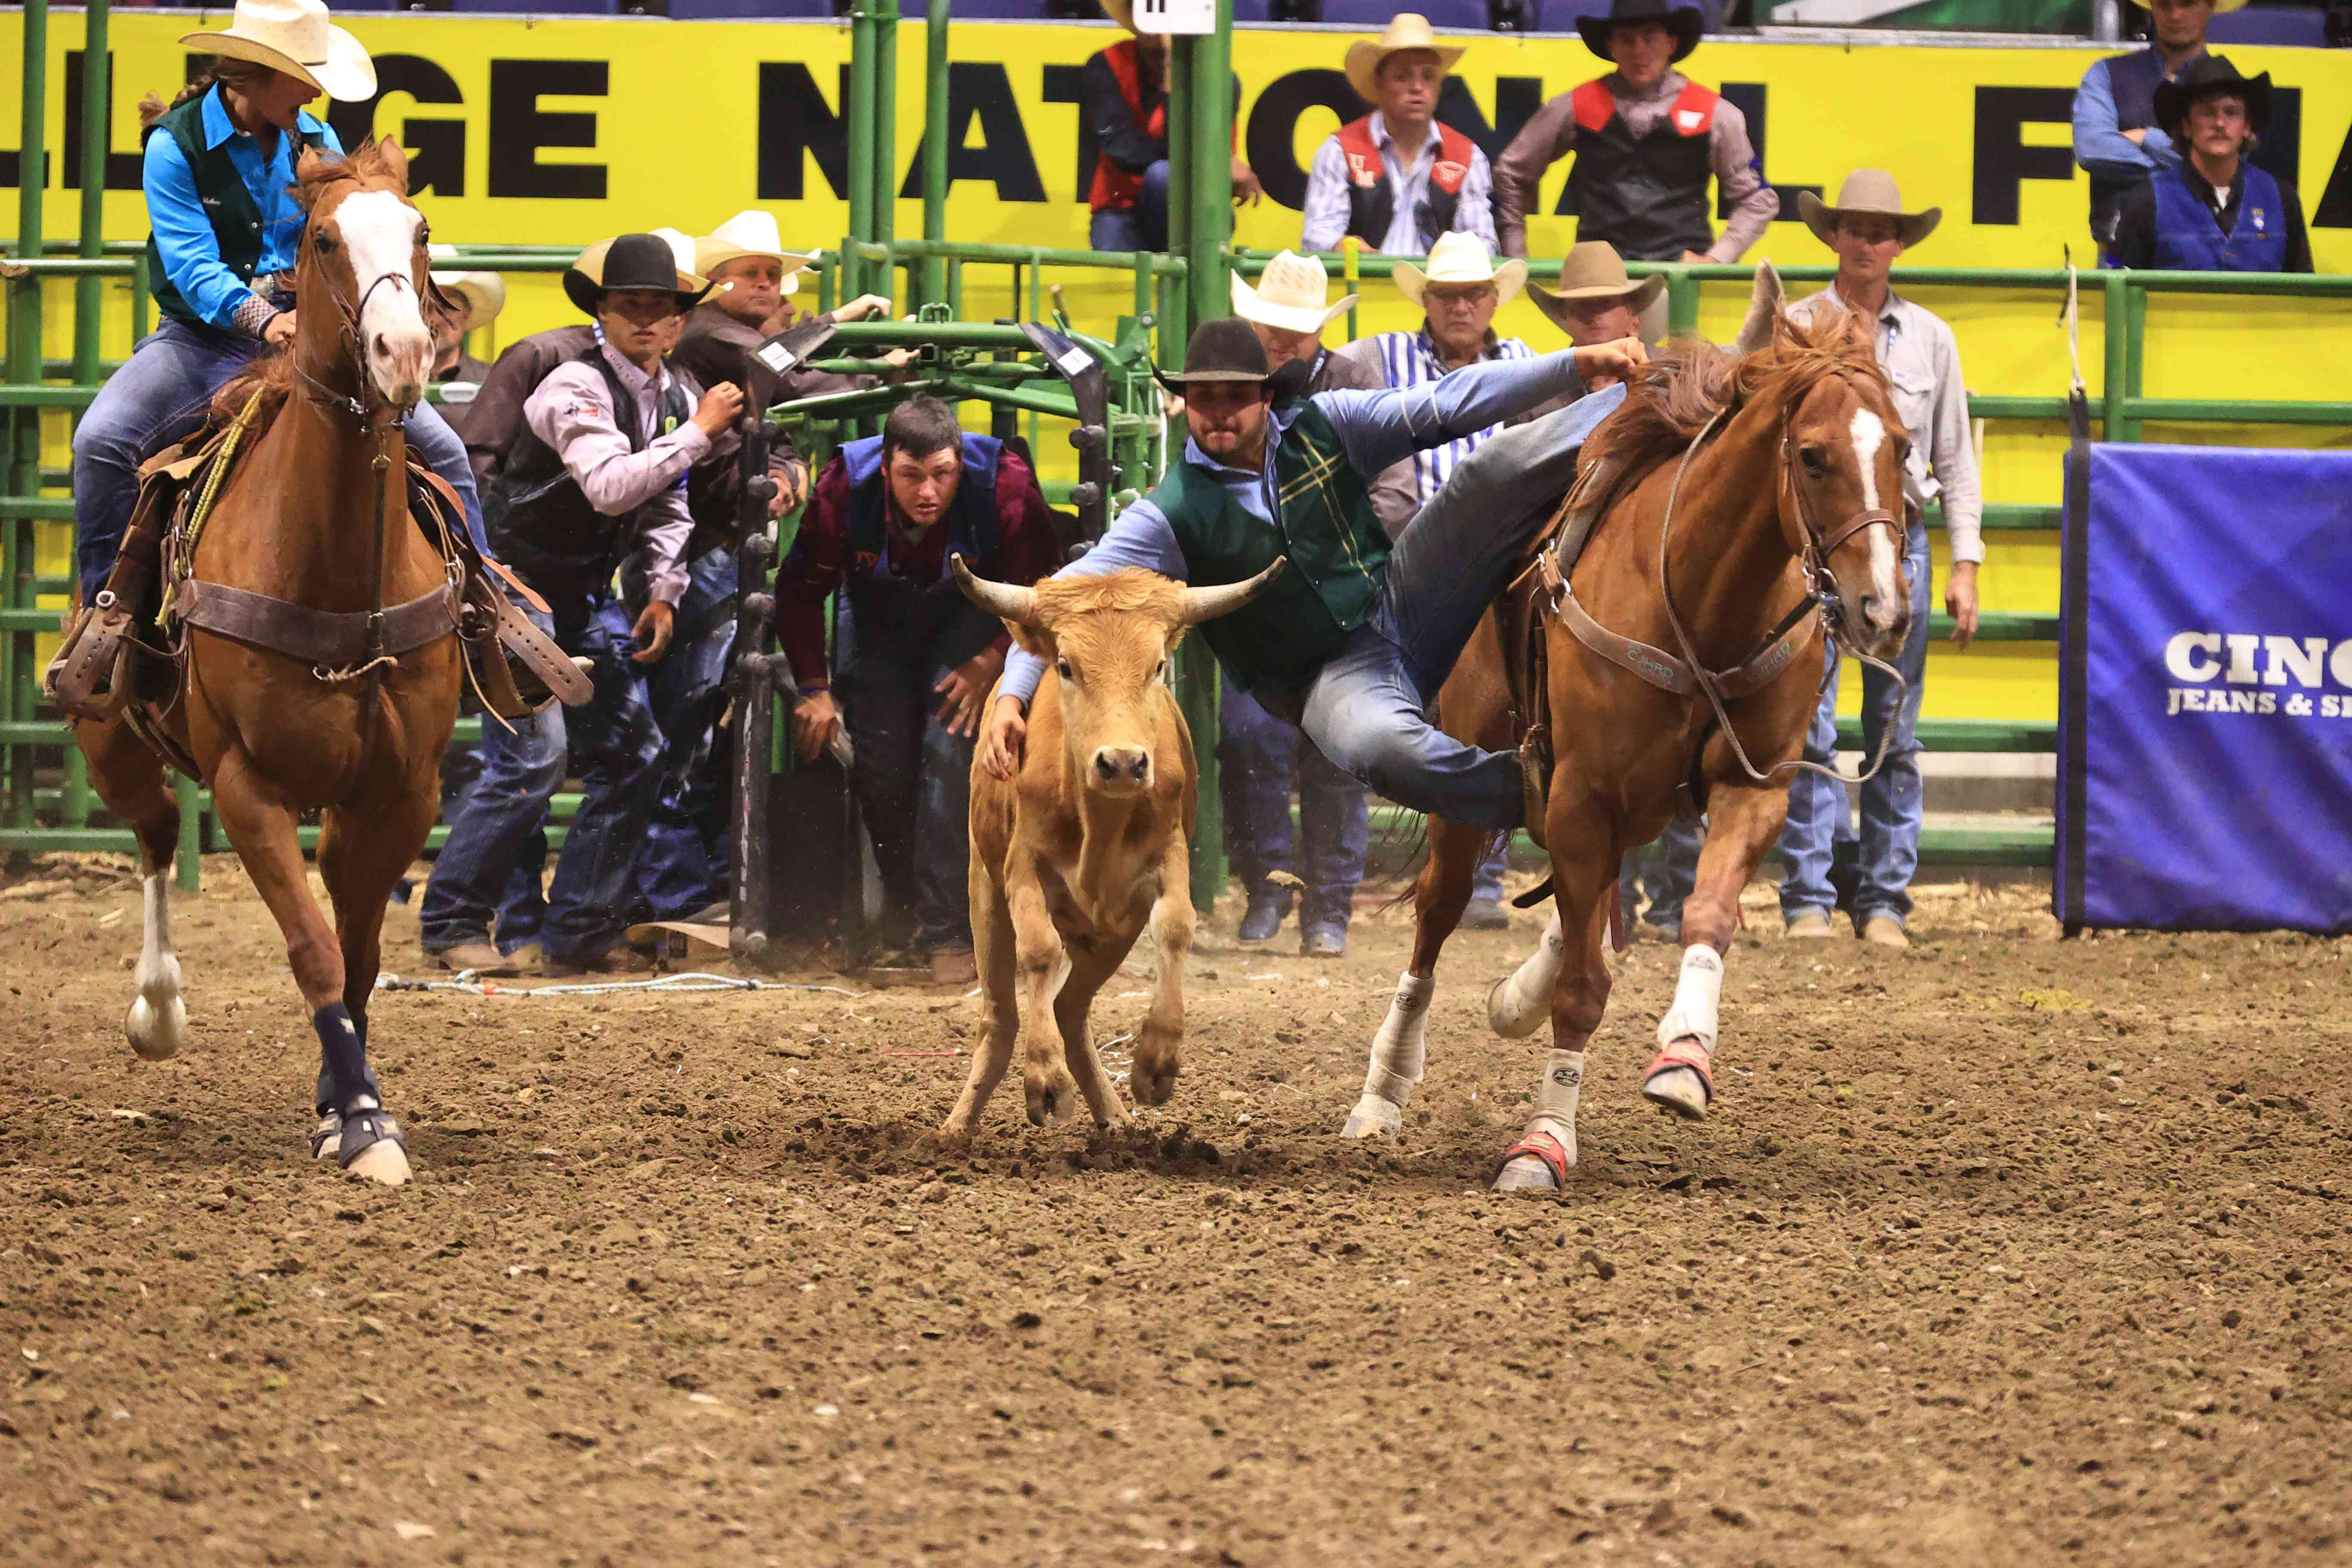 Grant Peterson, a second-year agricultural systems management major, competes in the steer wrestling event at the College National Finals Rodeo in Casper, Wyoming.